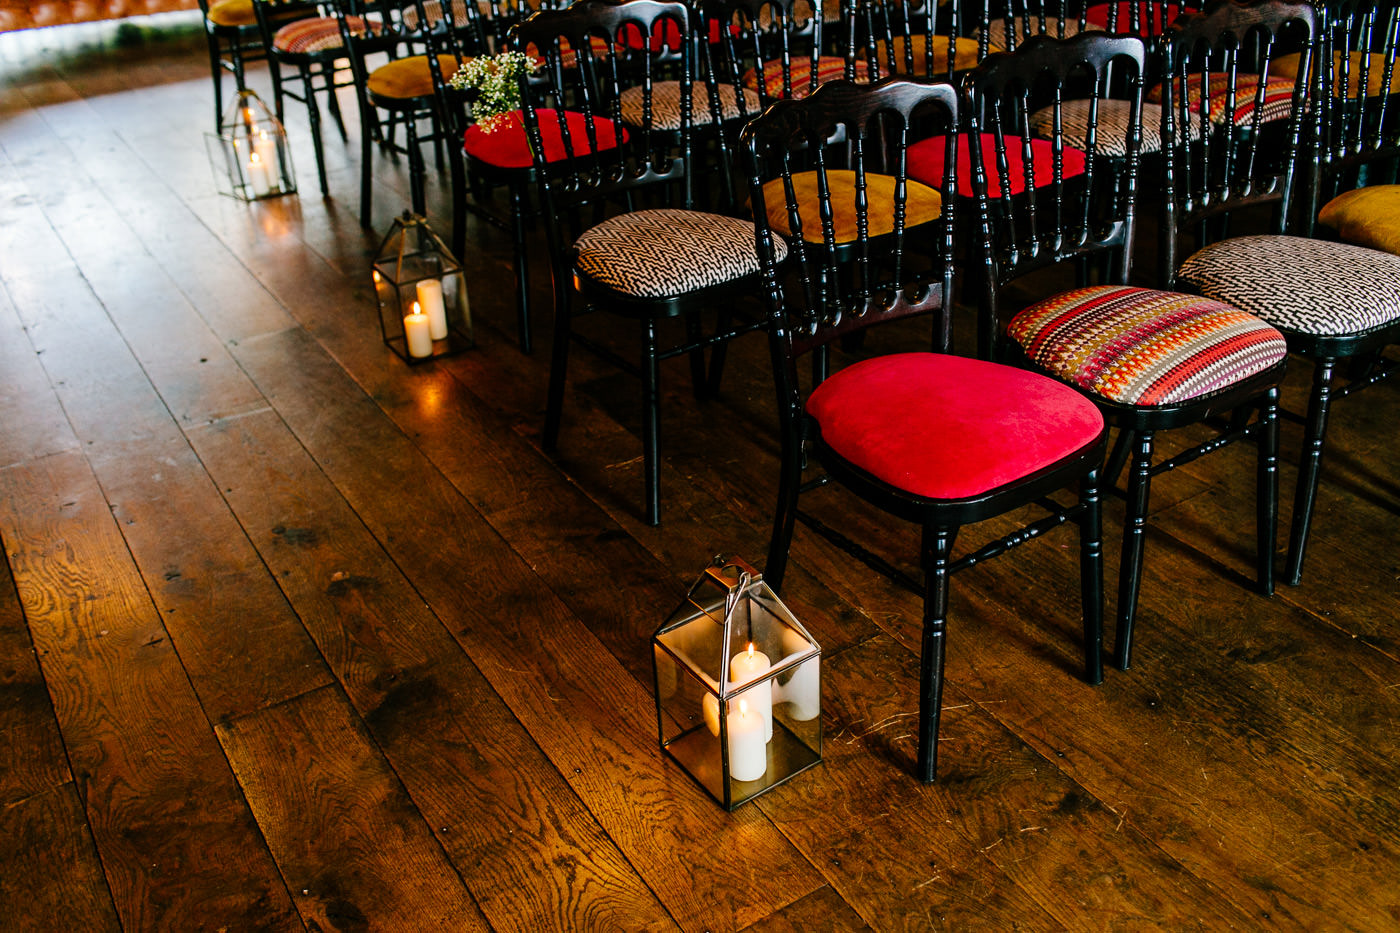 The-bell-in-Ticehurst-pub-kent-wedding-photographer-London-Epic-Love-Story-043